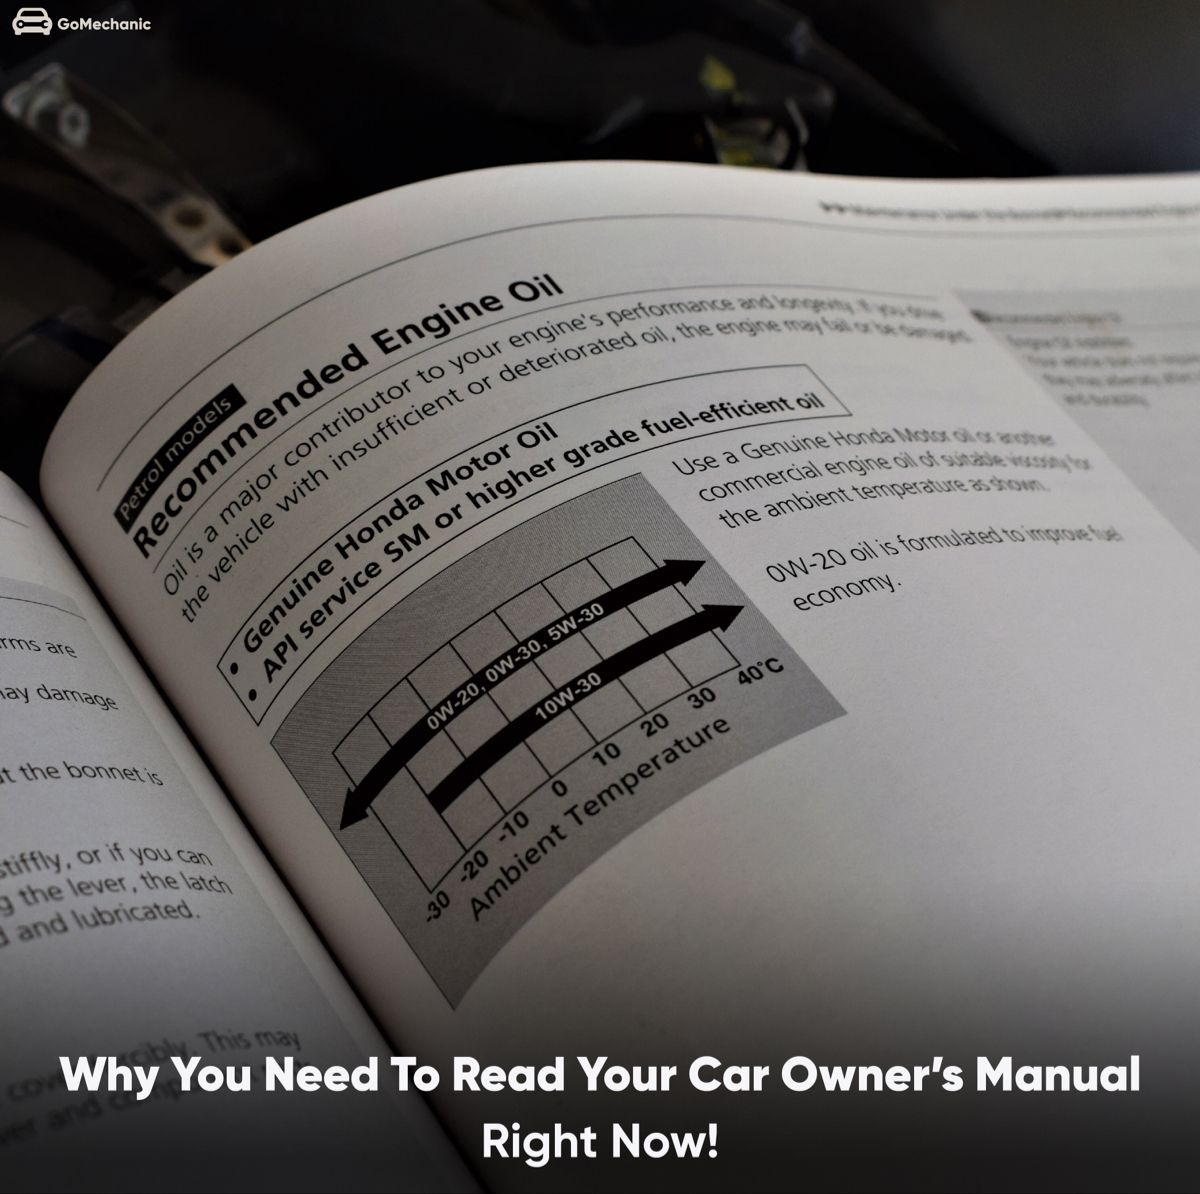 15 Reasons Why You Need To Read Your Car Owners Manual Right Now In 2020 Car Owners Manuals Owners Manuals Oil Change